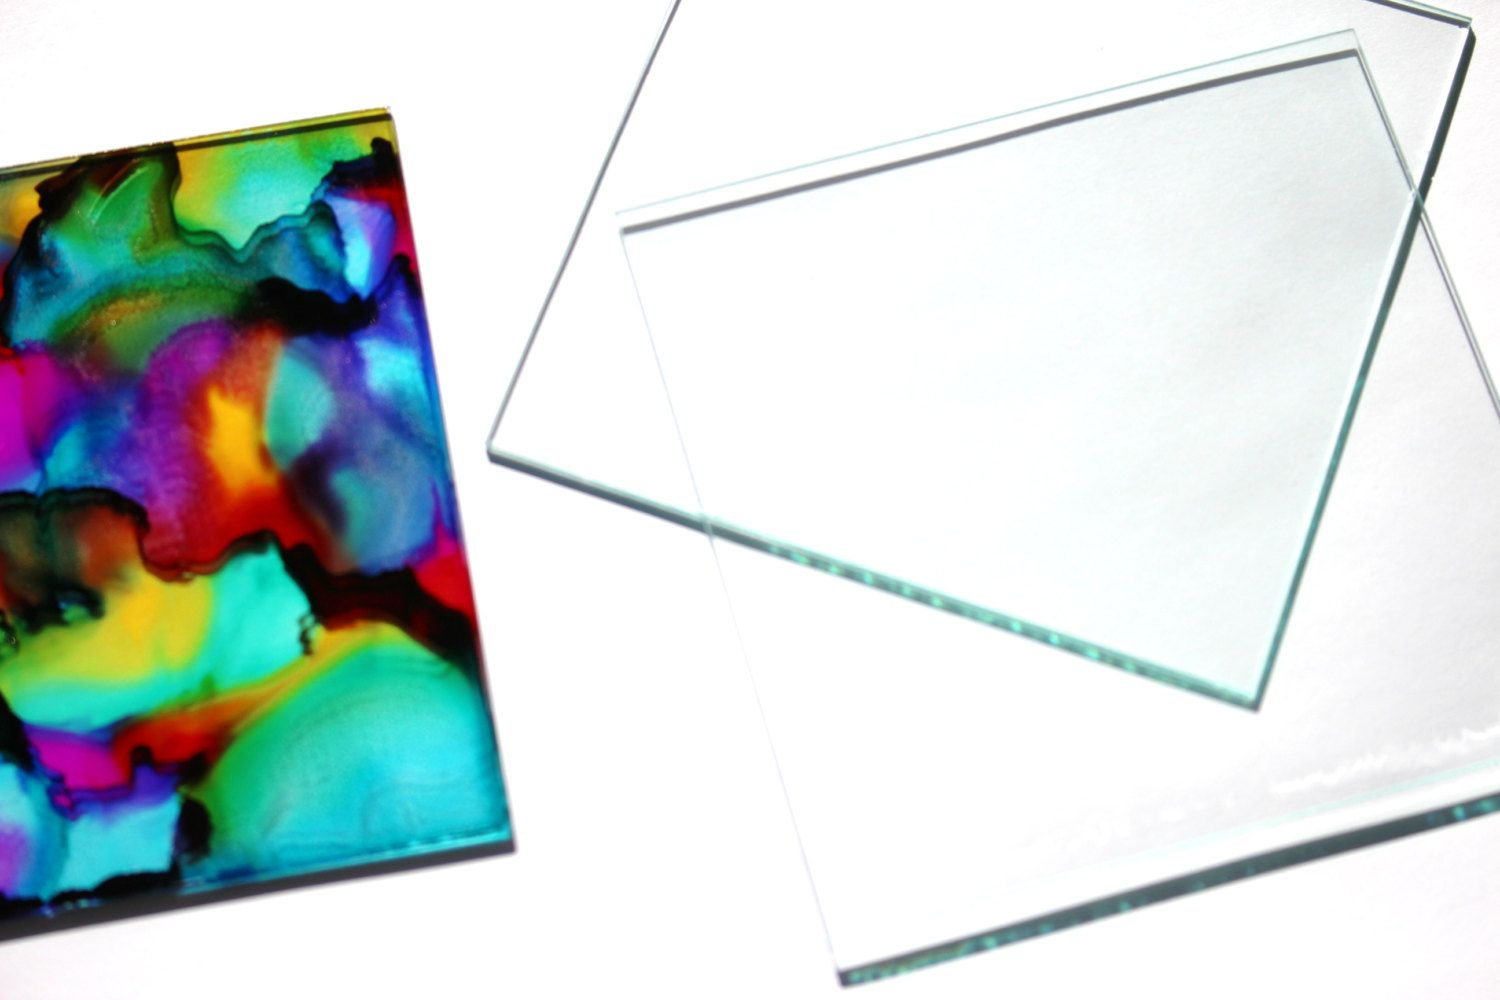 4 x 4 inch Glass Tiles 24 Squares Large DIY Blank for Coasters ...